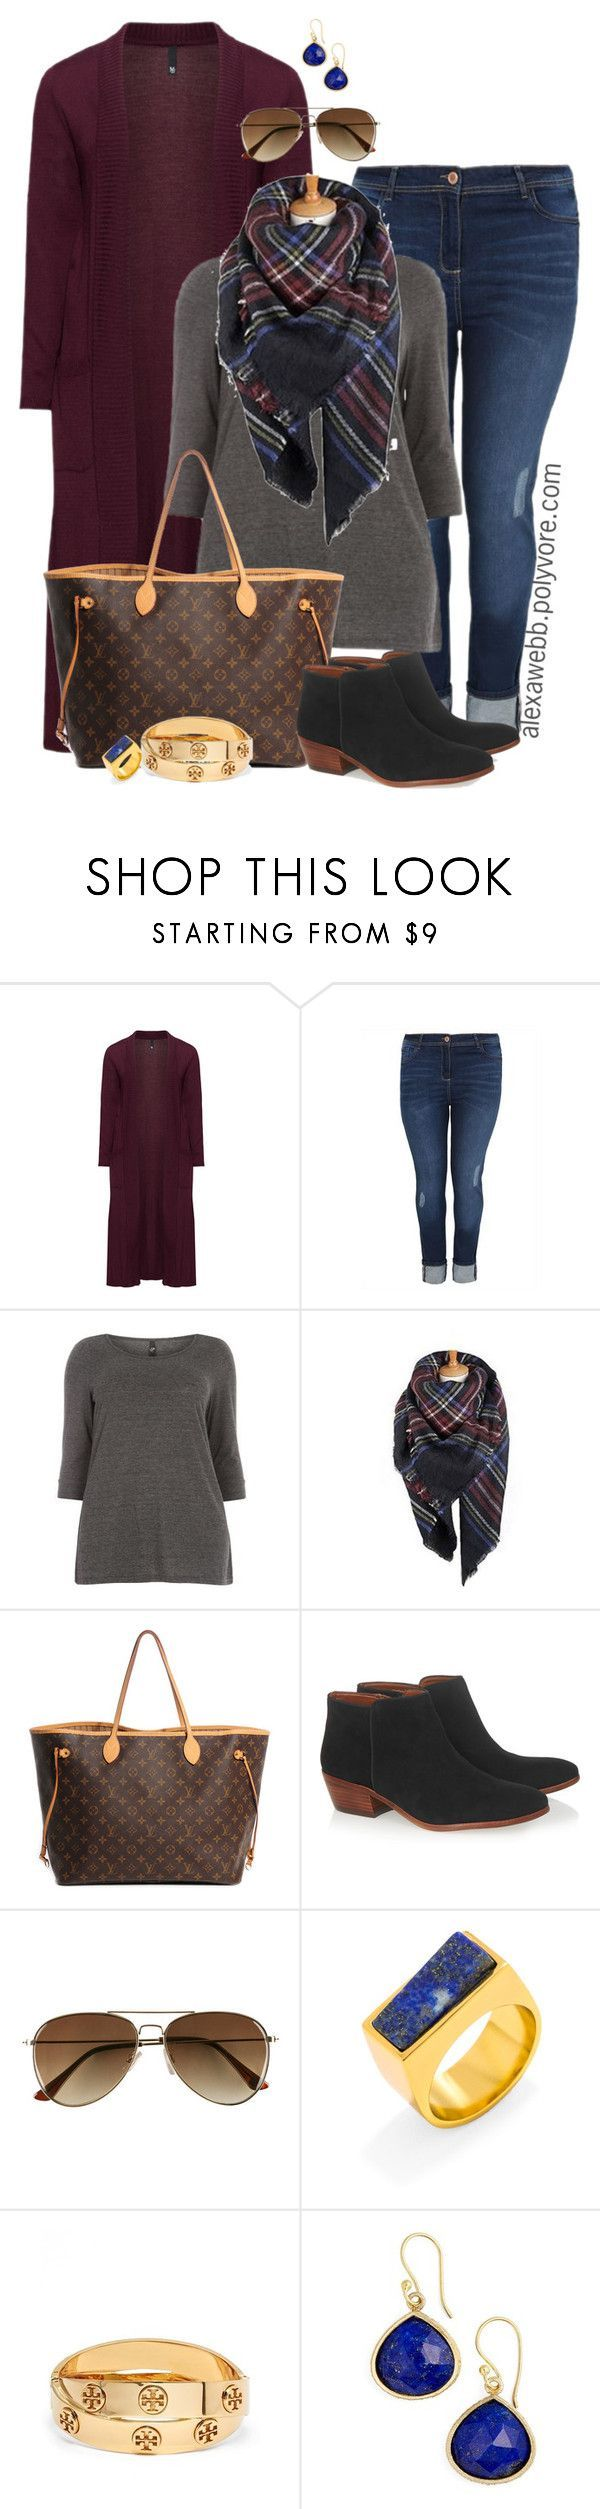 Plus Size - Fall Casual Outfit